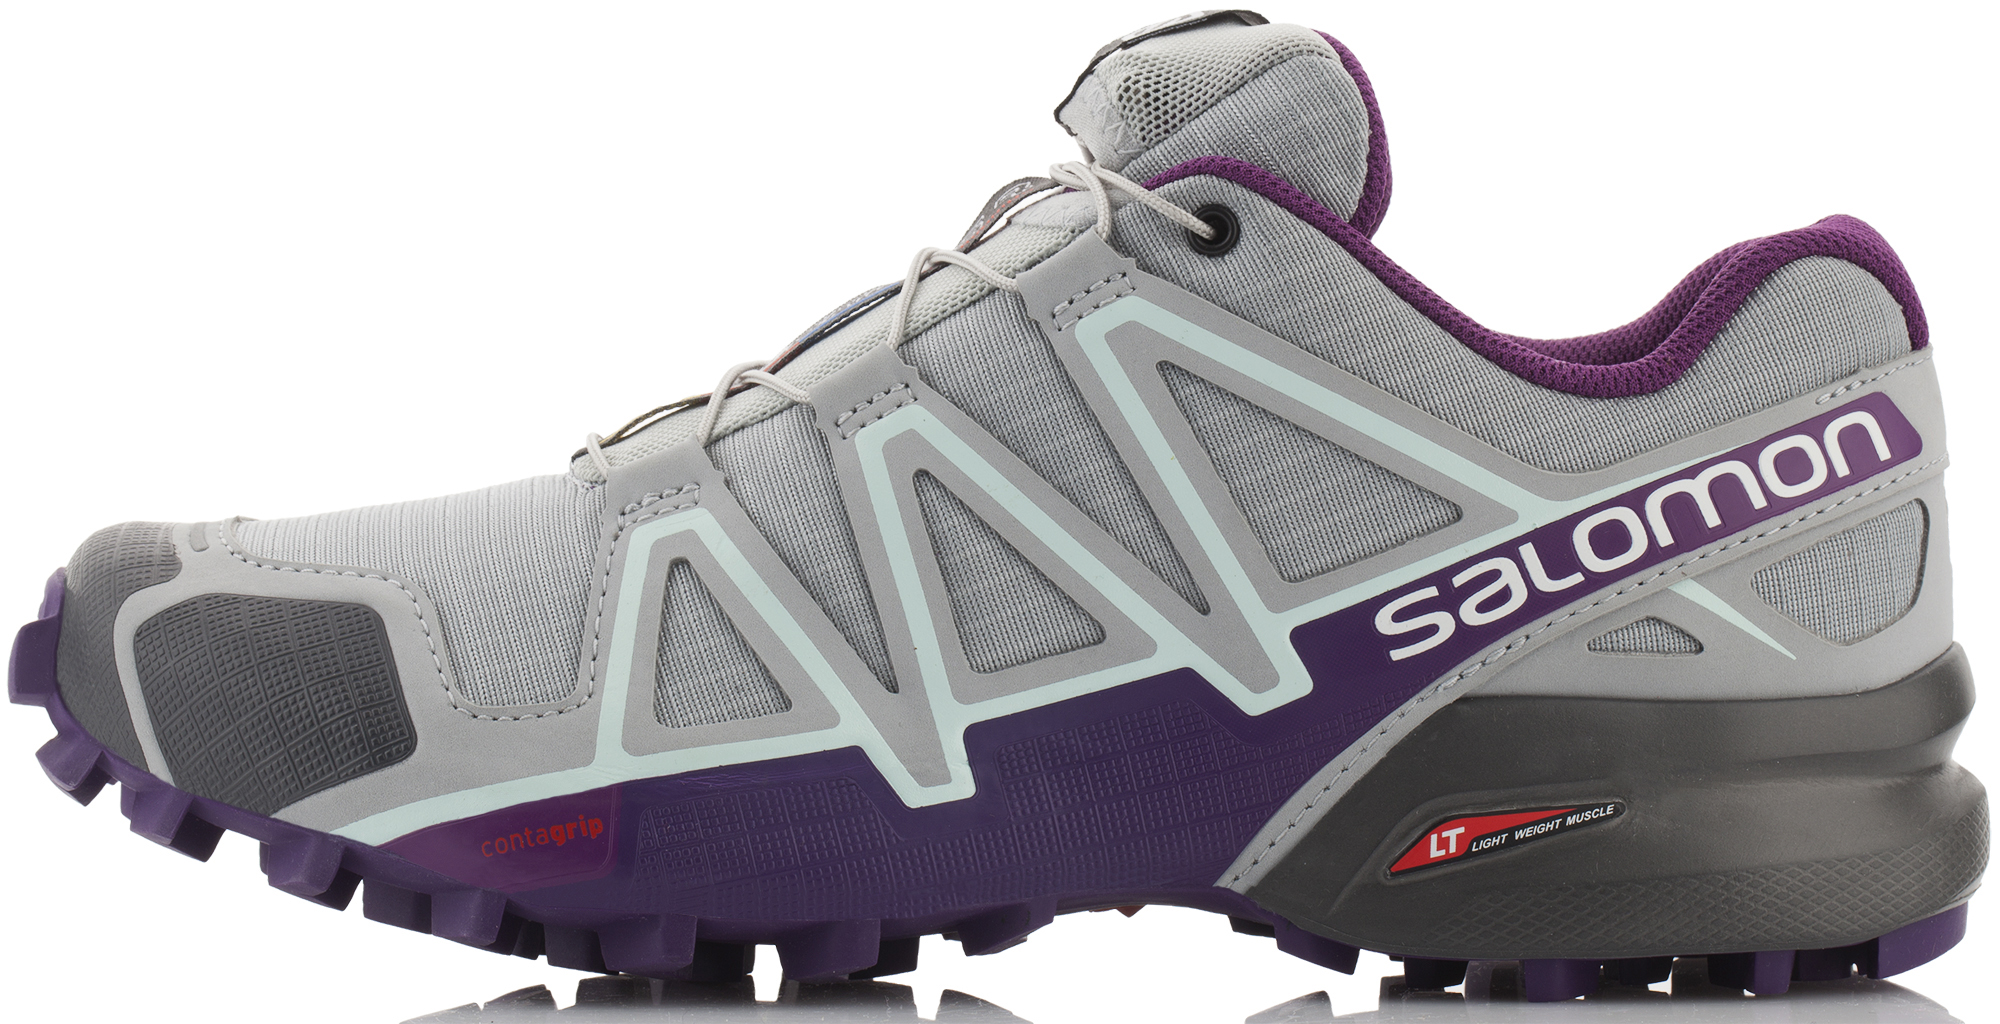 Salomon Кроссовки женские Salomon Speedcross 4 salomon salomon craft 17 18